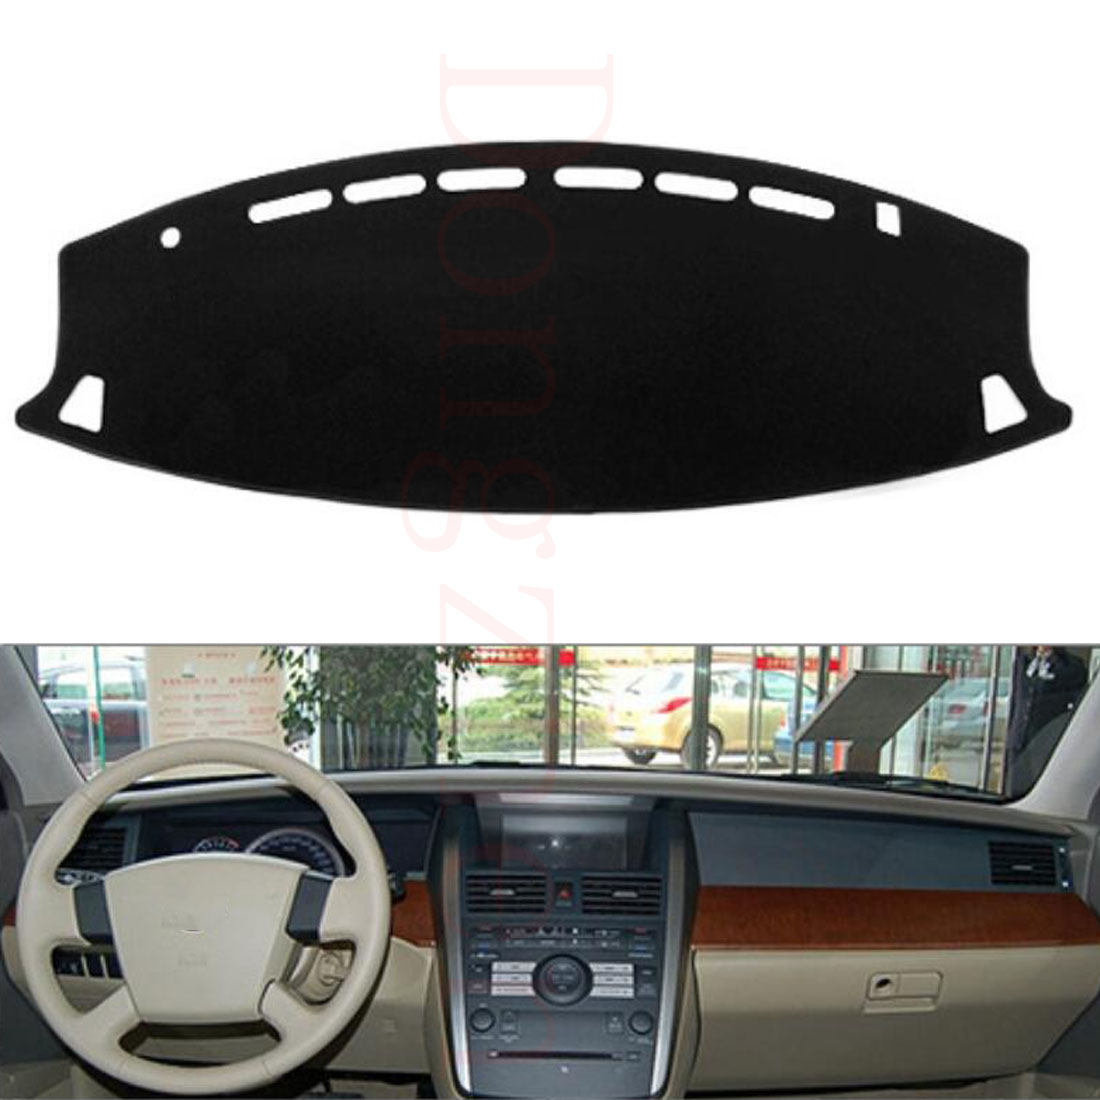 Dongzhen Fit For Nissan Teana 2004 to 2007 Car Dashboard Cover Avoid Light Pad Instrument Platform Dash Board Cover Car Styling